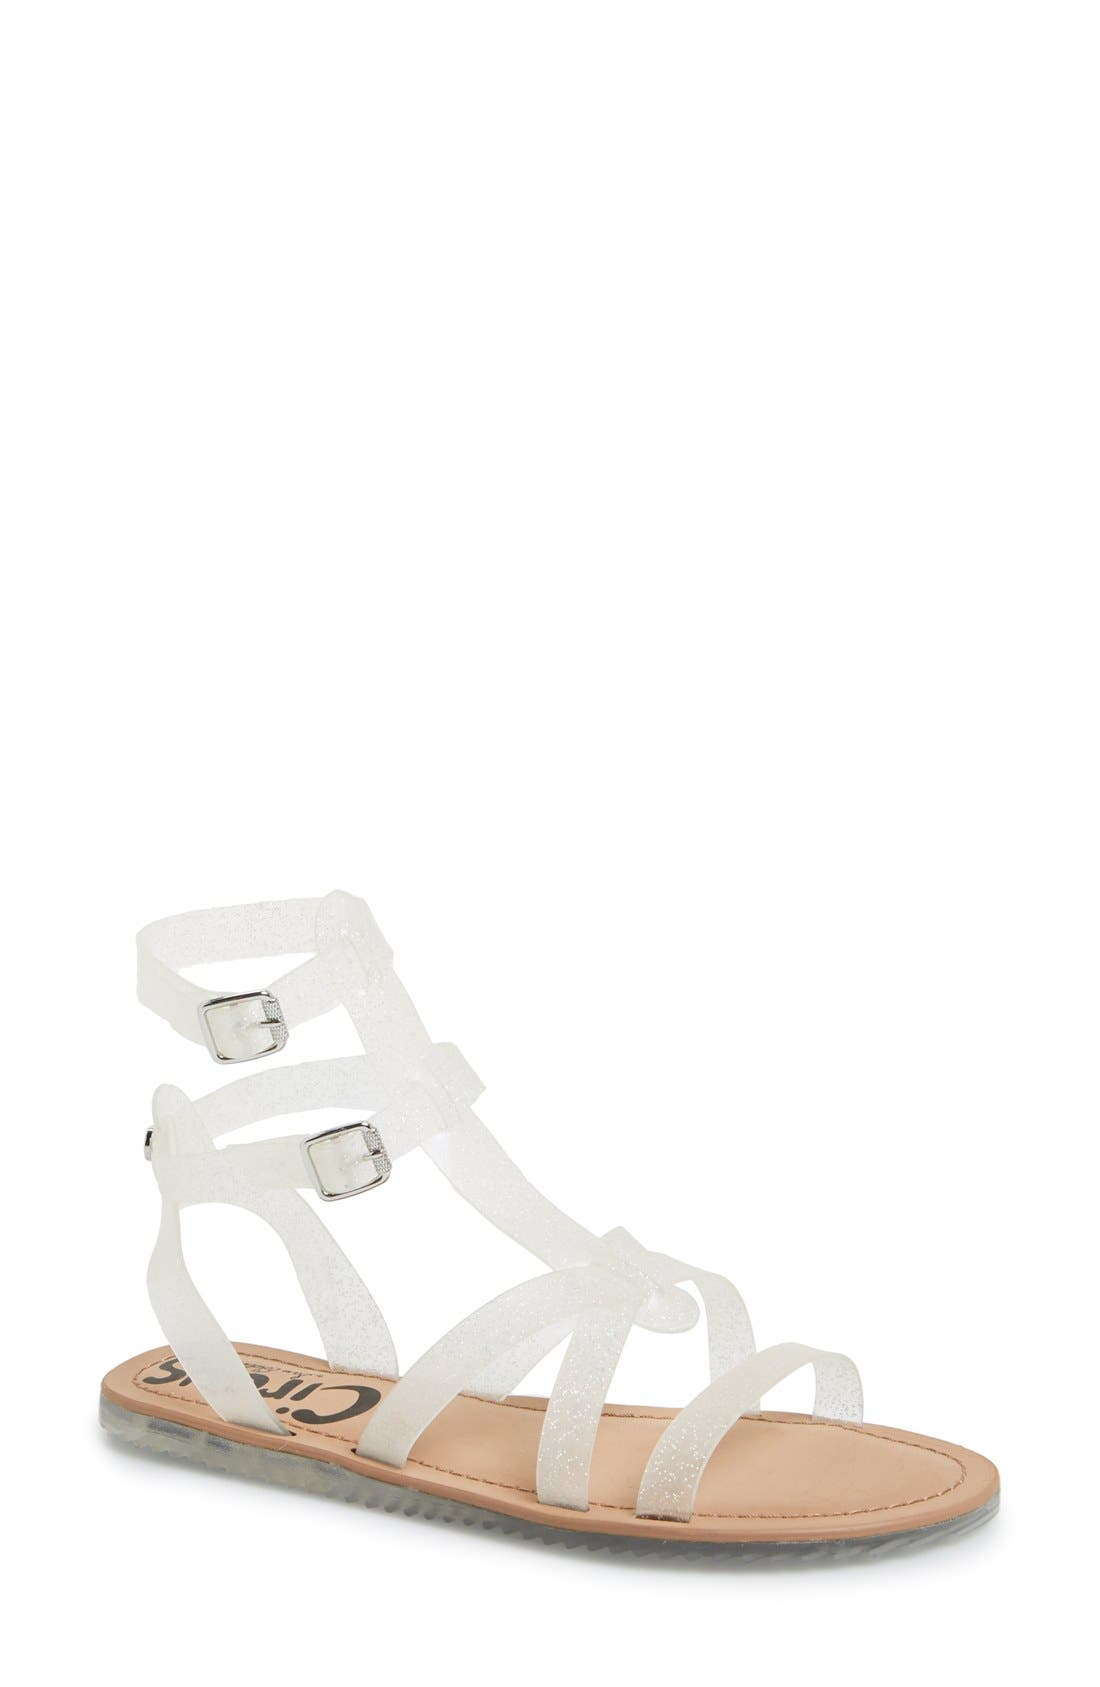 Alternate Image 1 Selected - Circus by Sam Edelman 'Selma' Gladiator Sandal